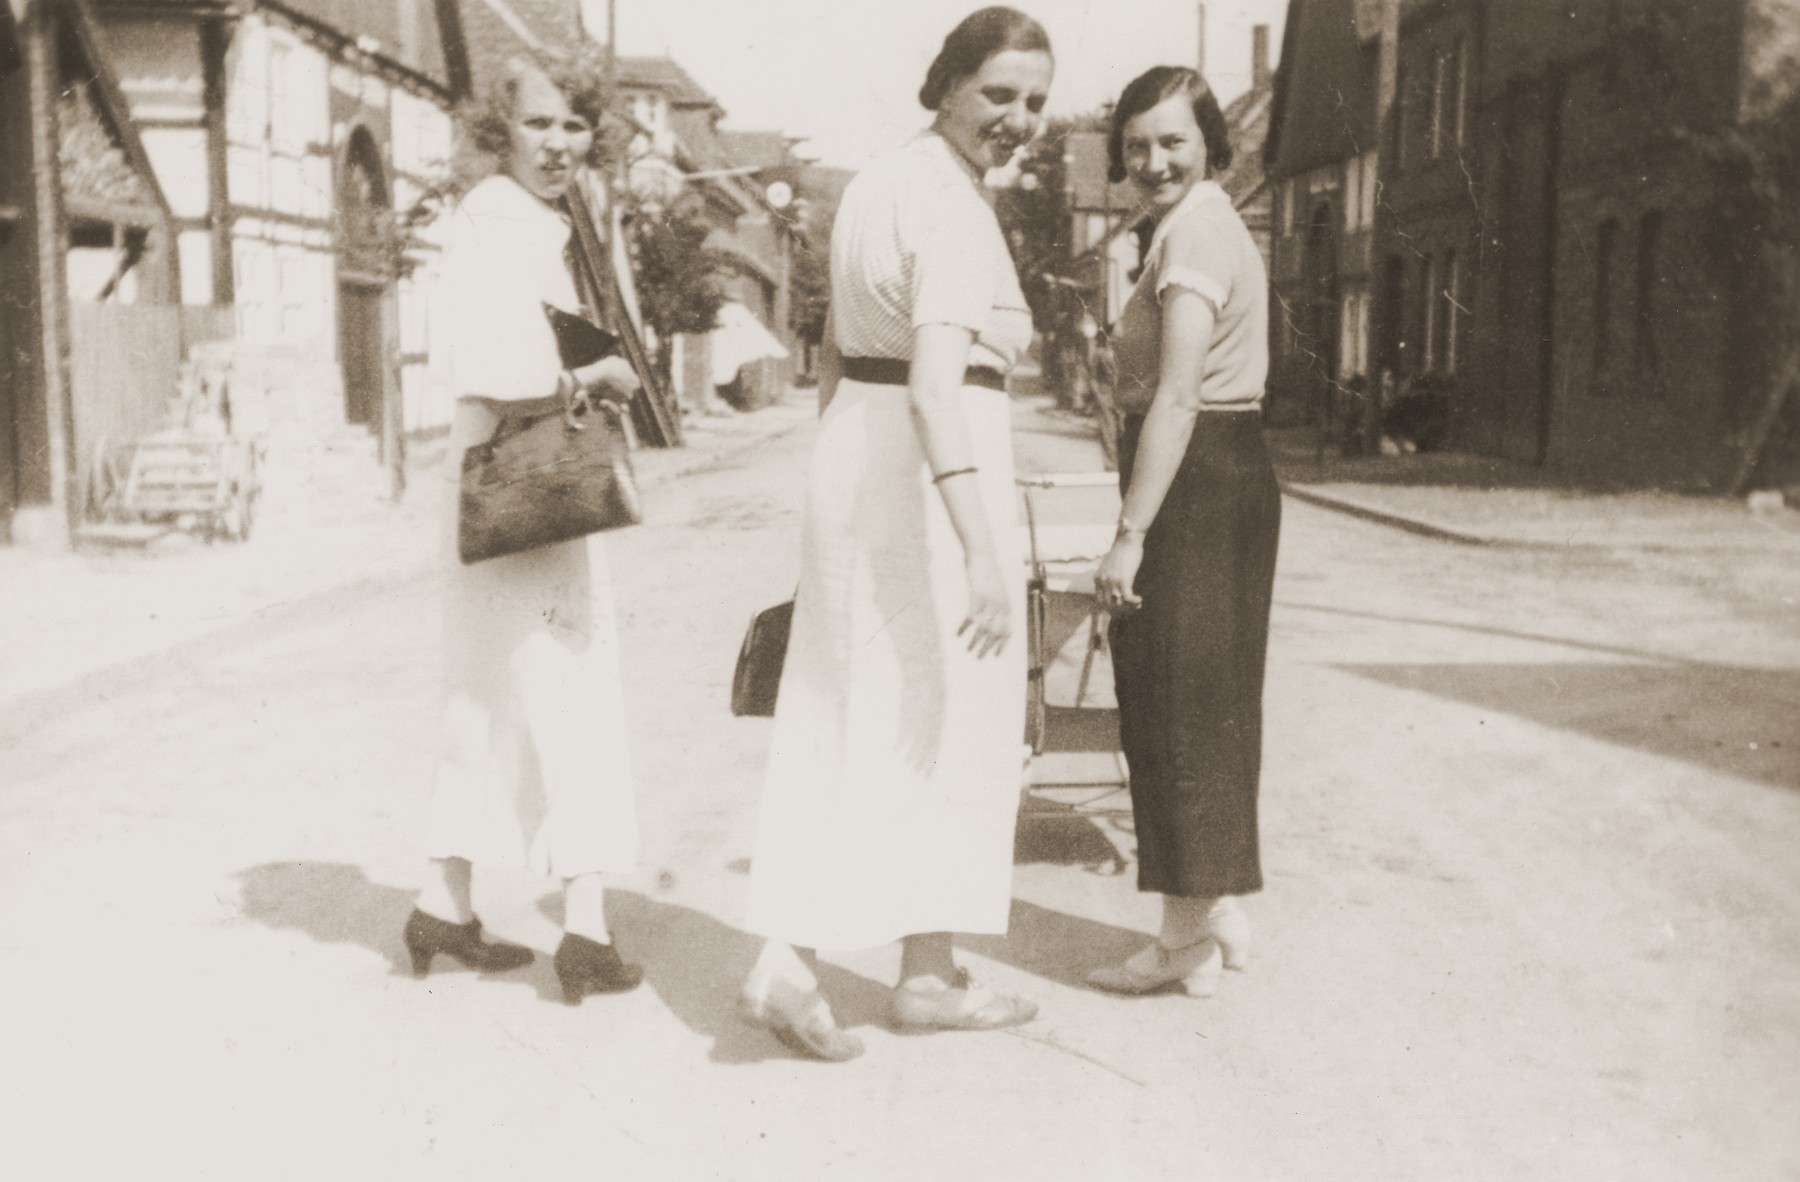 The three Stern sister-in-laws, Lizbet (left), Hedva (center) and Resi (right), walk down a street in Willebadessen.